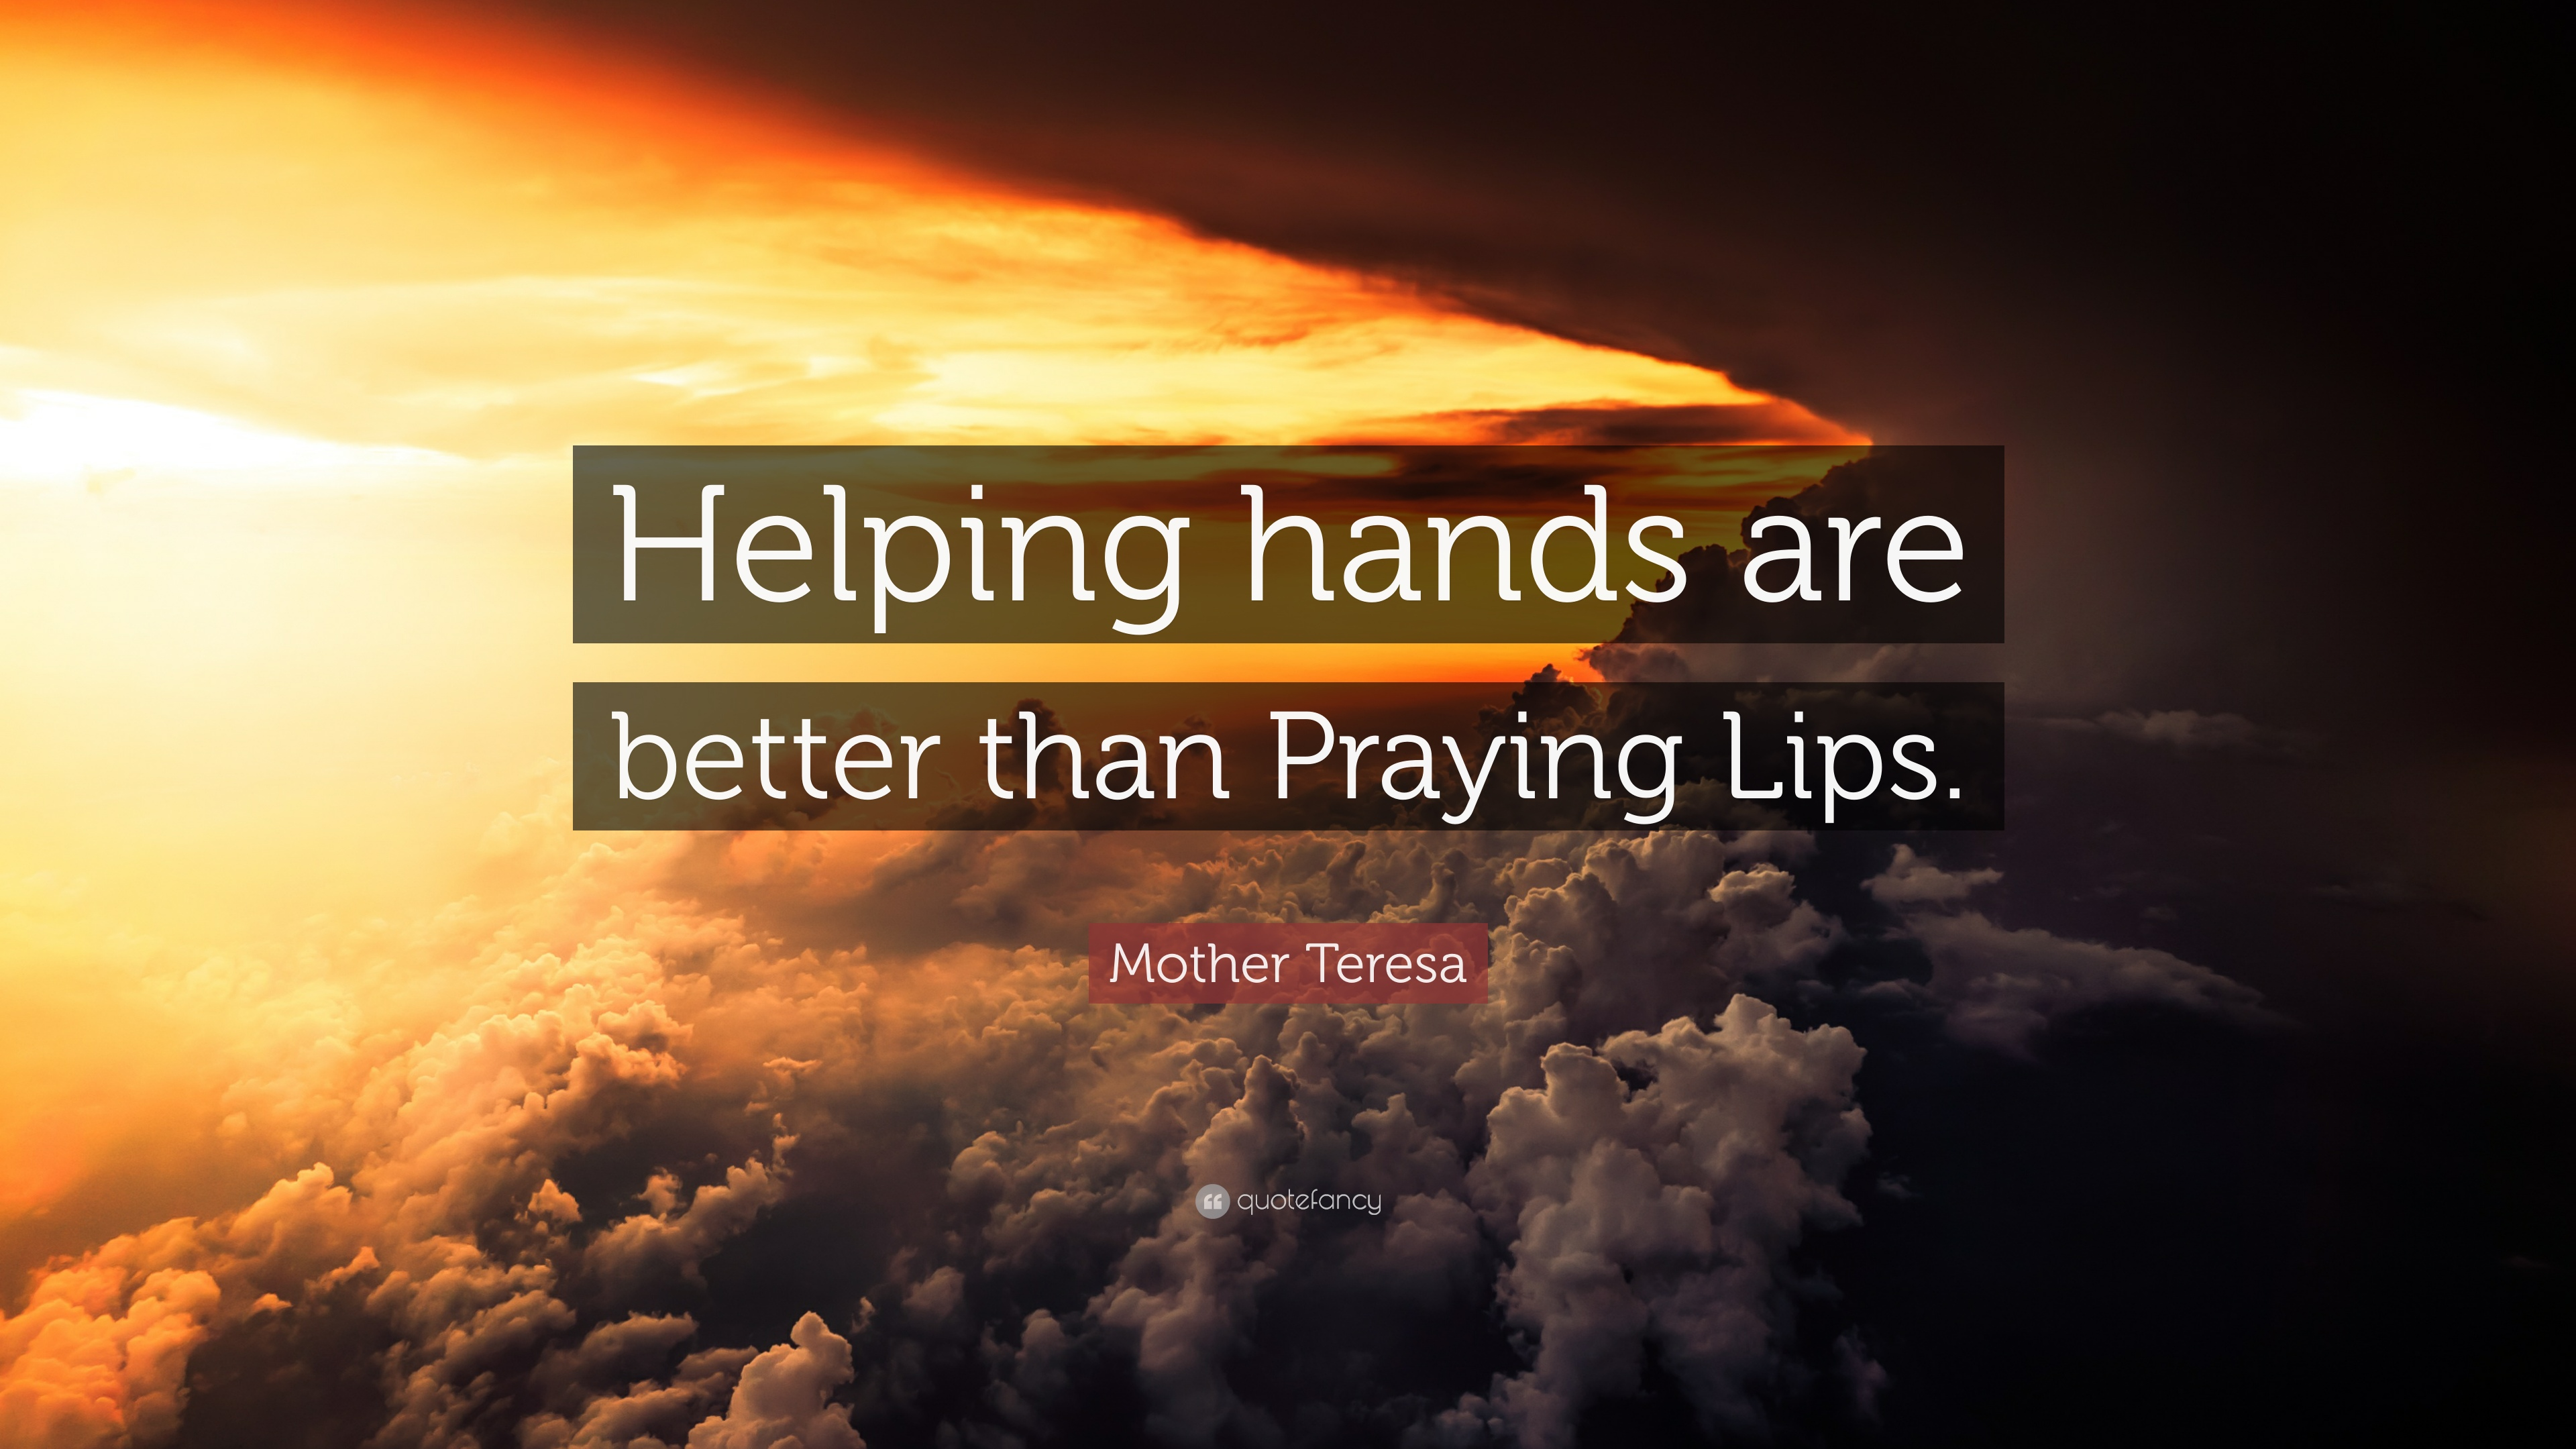 Helping hands are better than praying lips